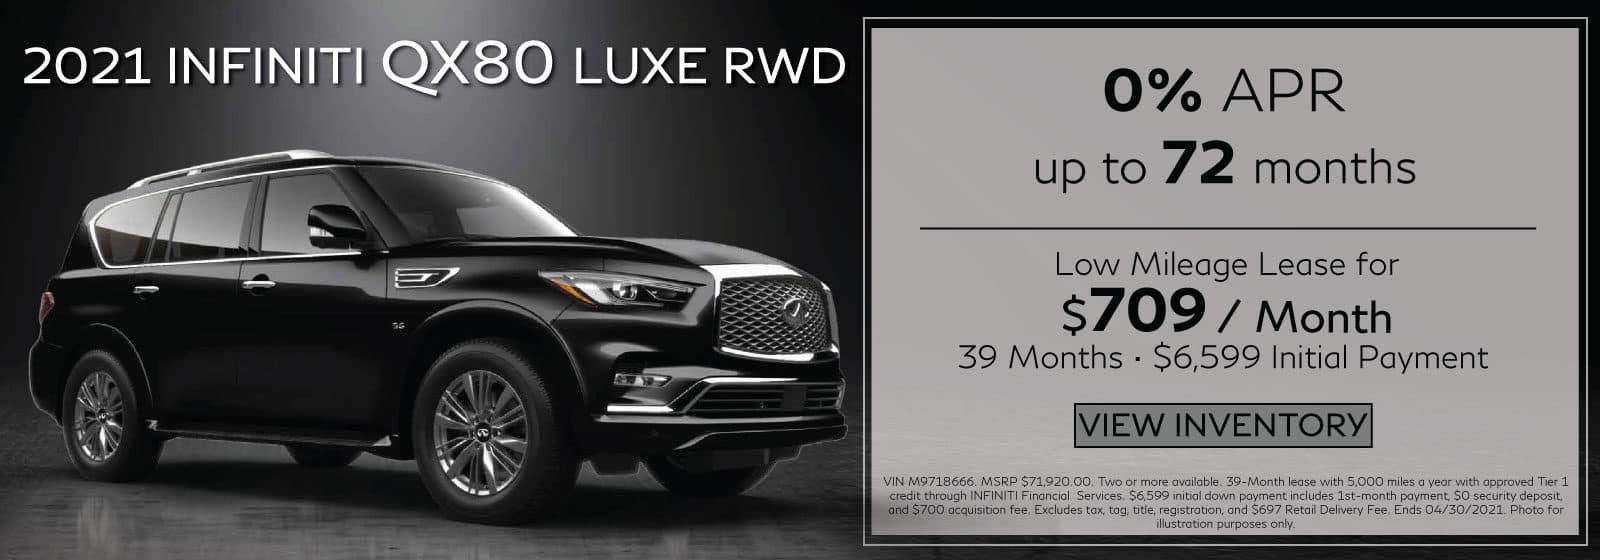 2021 QX80 LUXE. $709/mo for 39 months. $6,599 Initial Payment